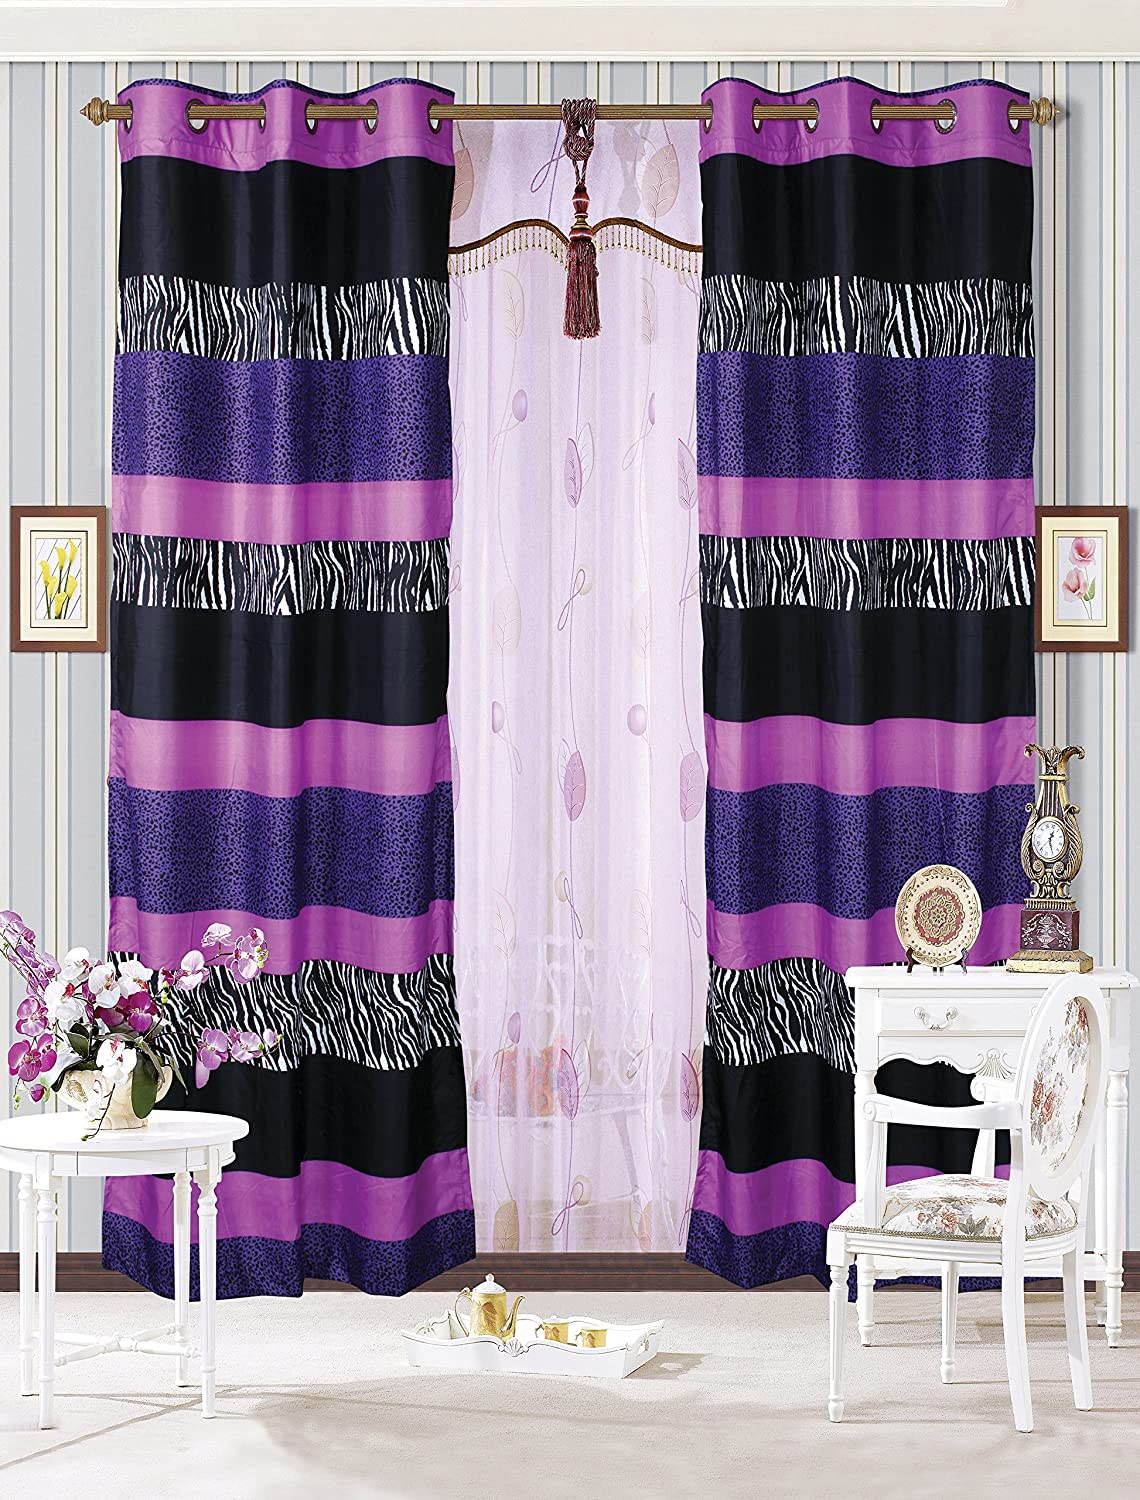 Mk Collection 2 Panel Curtains Teens/girls Zebra Leopard Purple Pink White Black MK Home